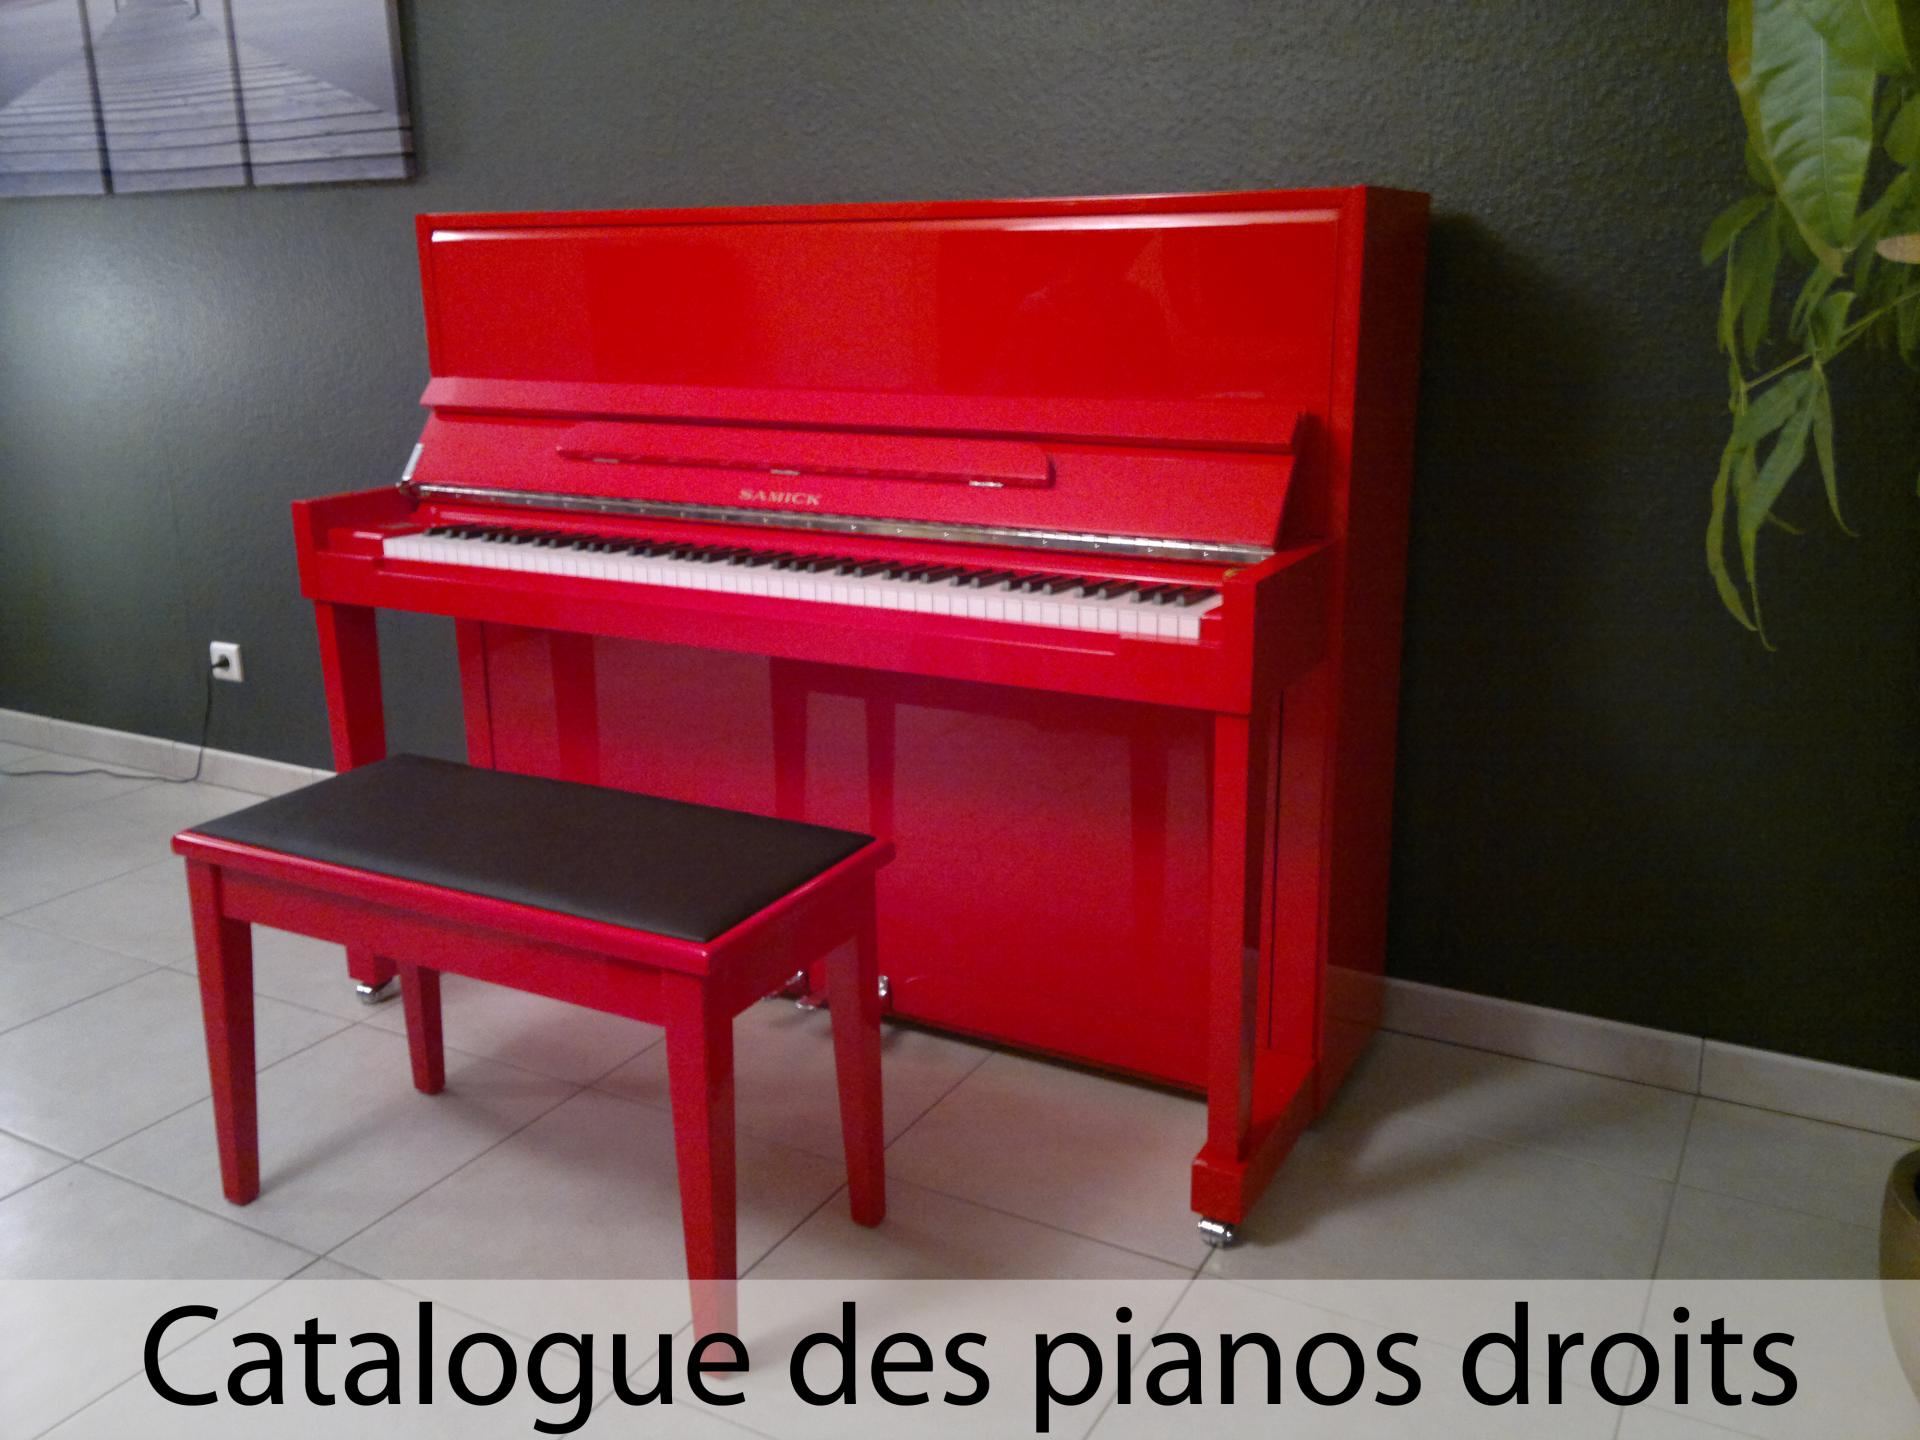 Acceuil pianos droits